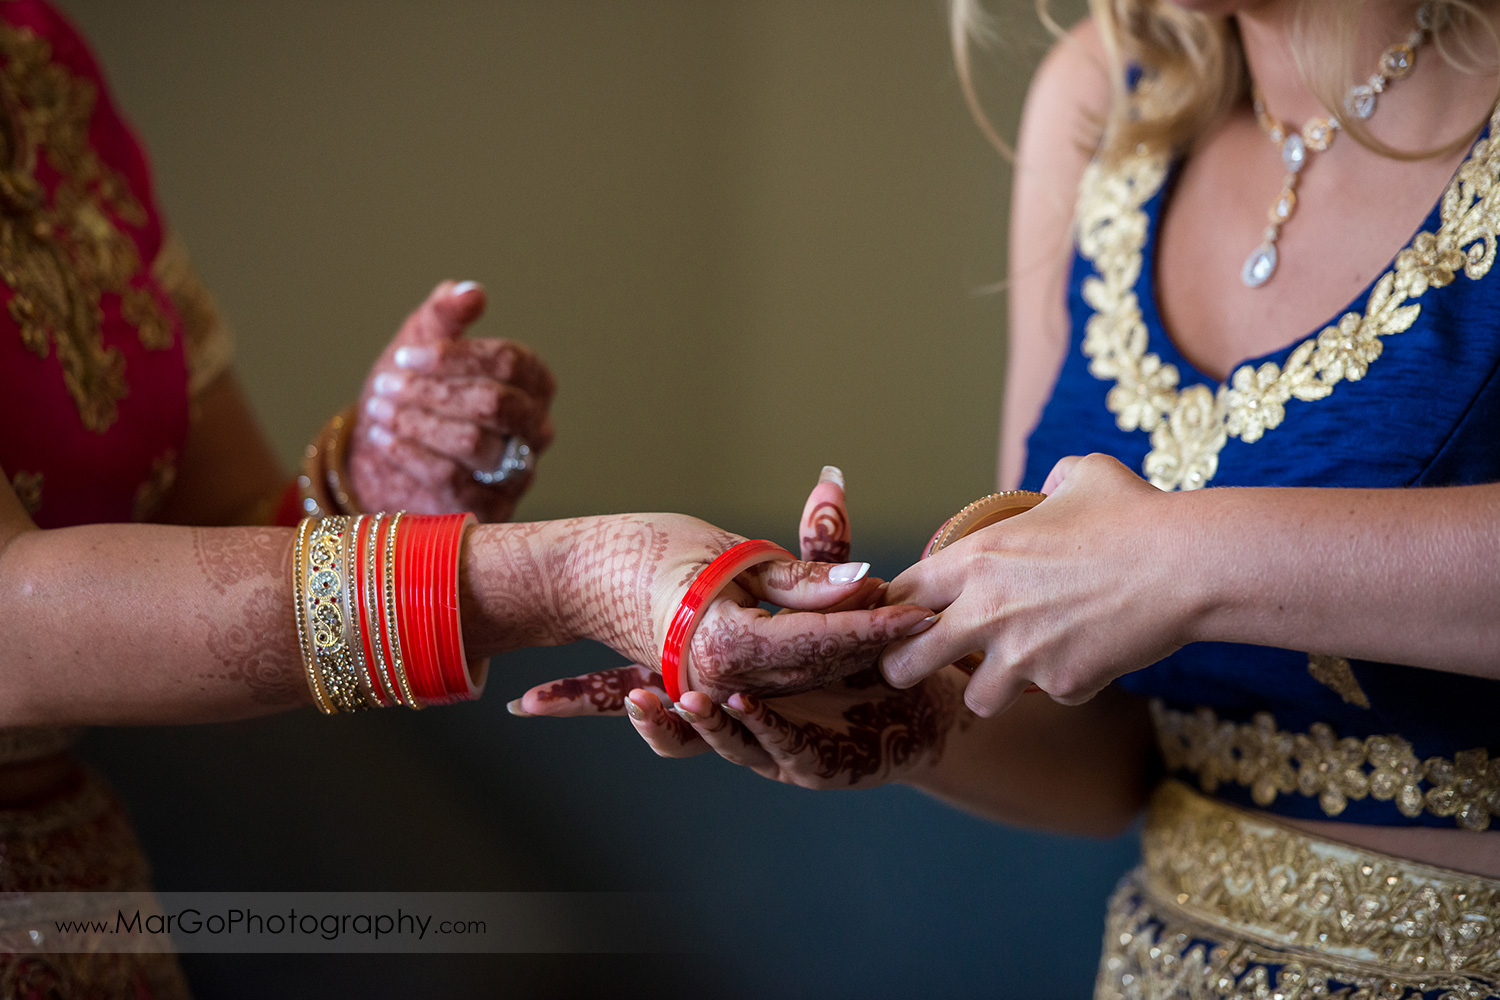 Indian bride preparation - putting on red and golden wedding bangles choora